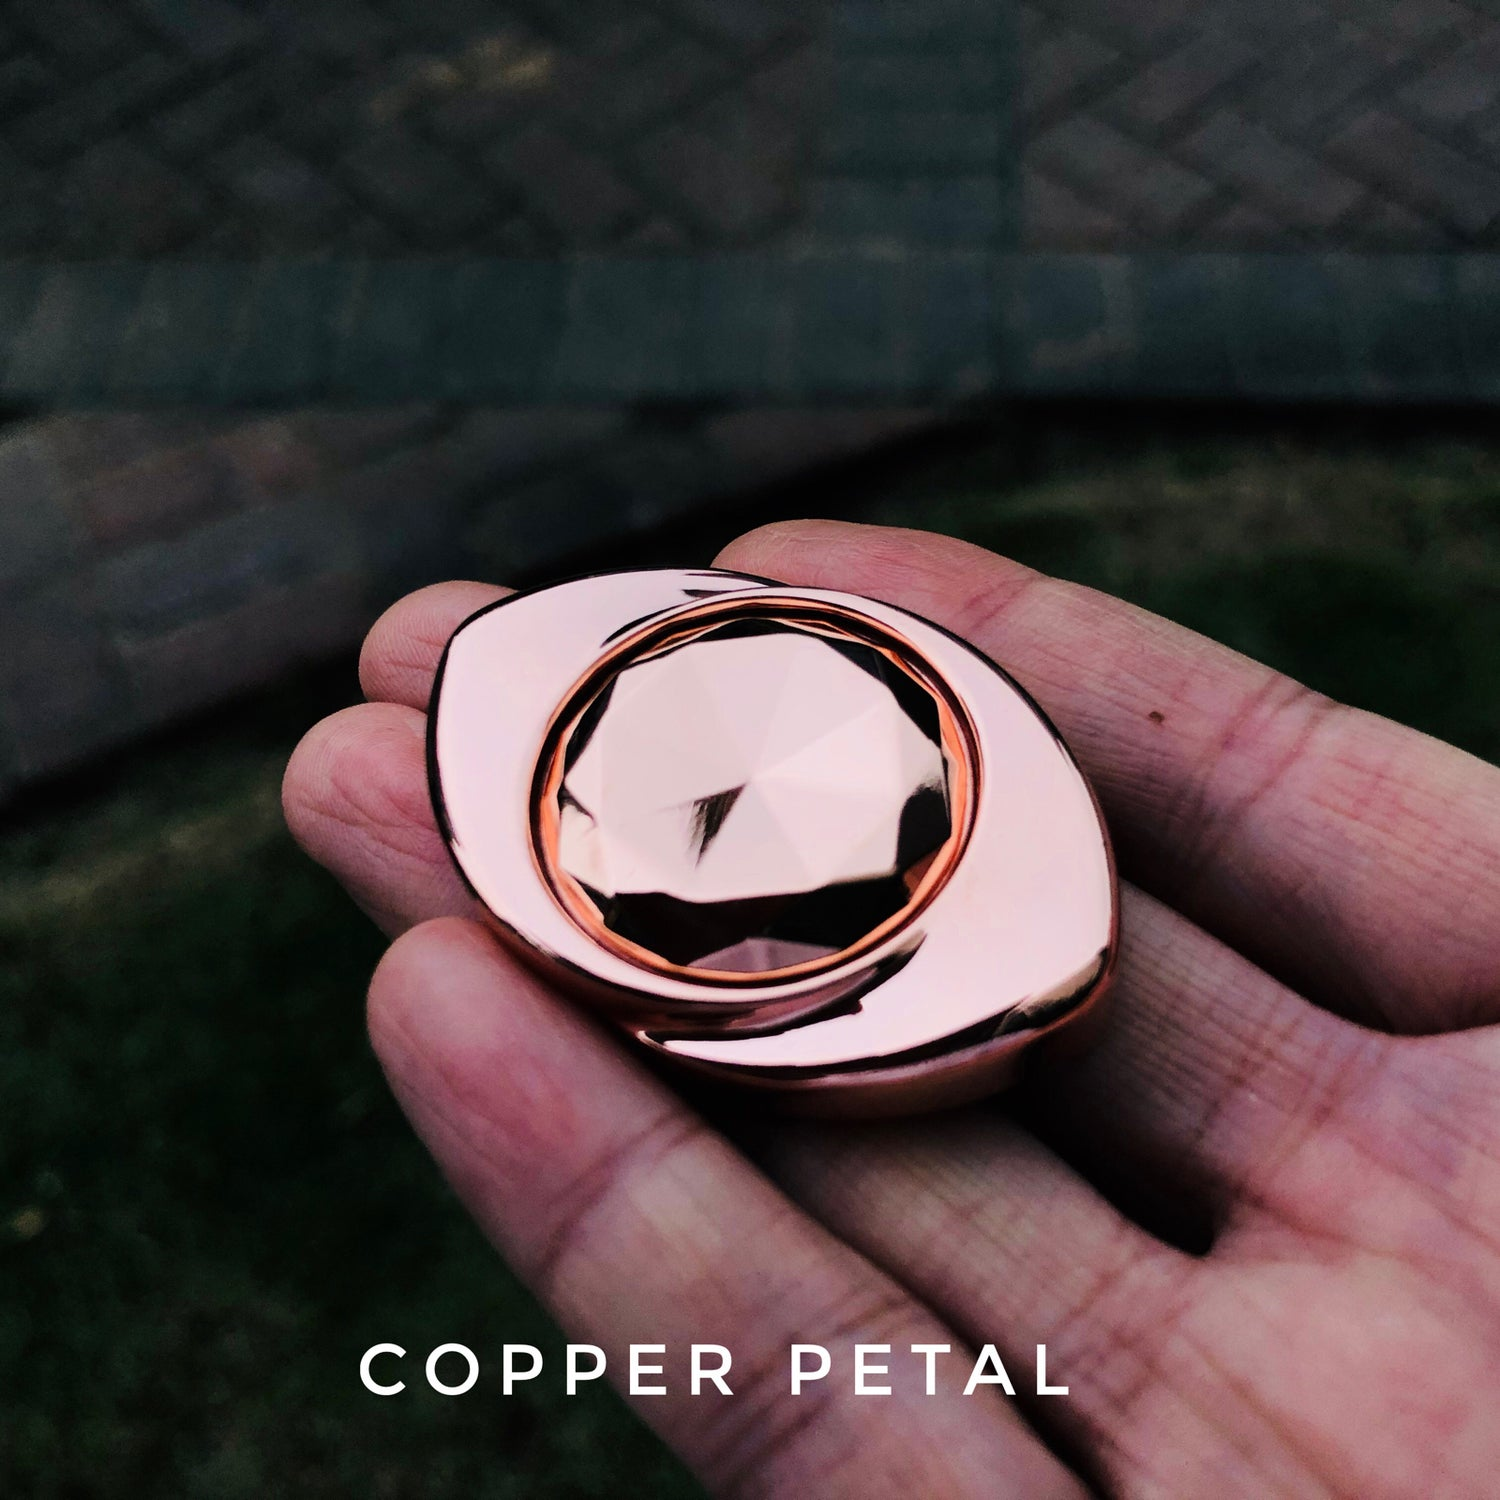 Image of Copper/Bronze/Ti Petal handspinner drop-time 21th October 08:00 PM EST